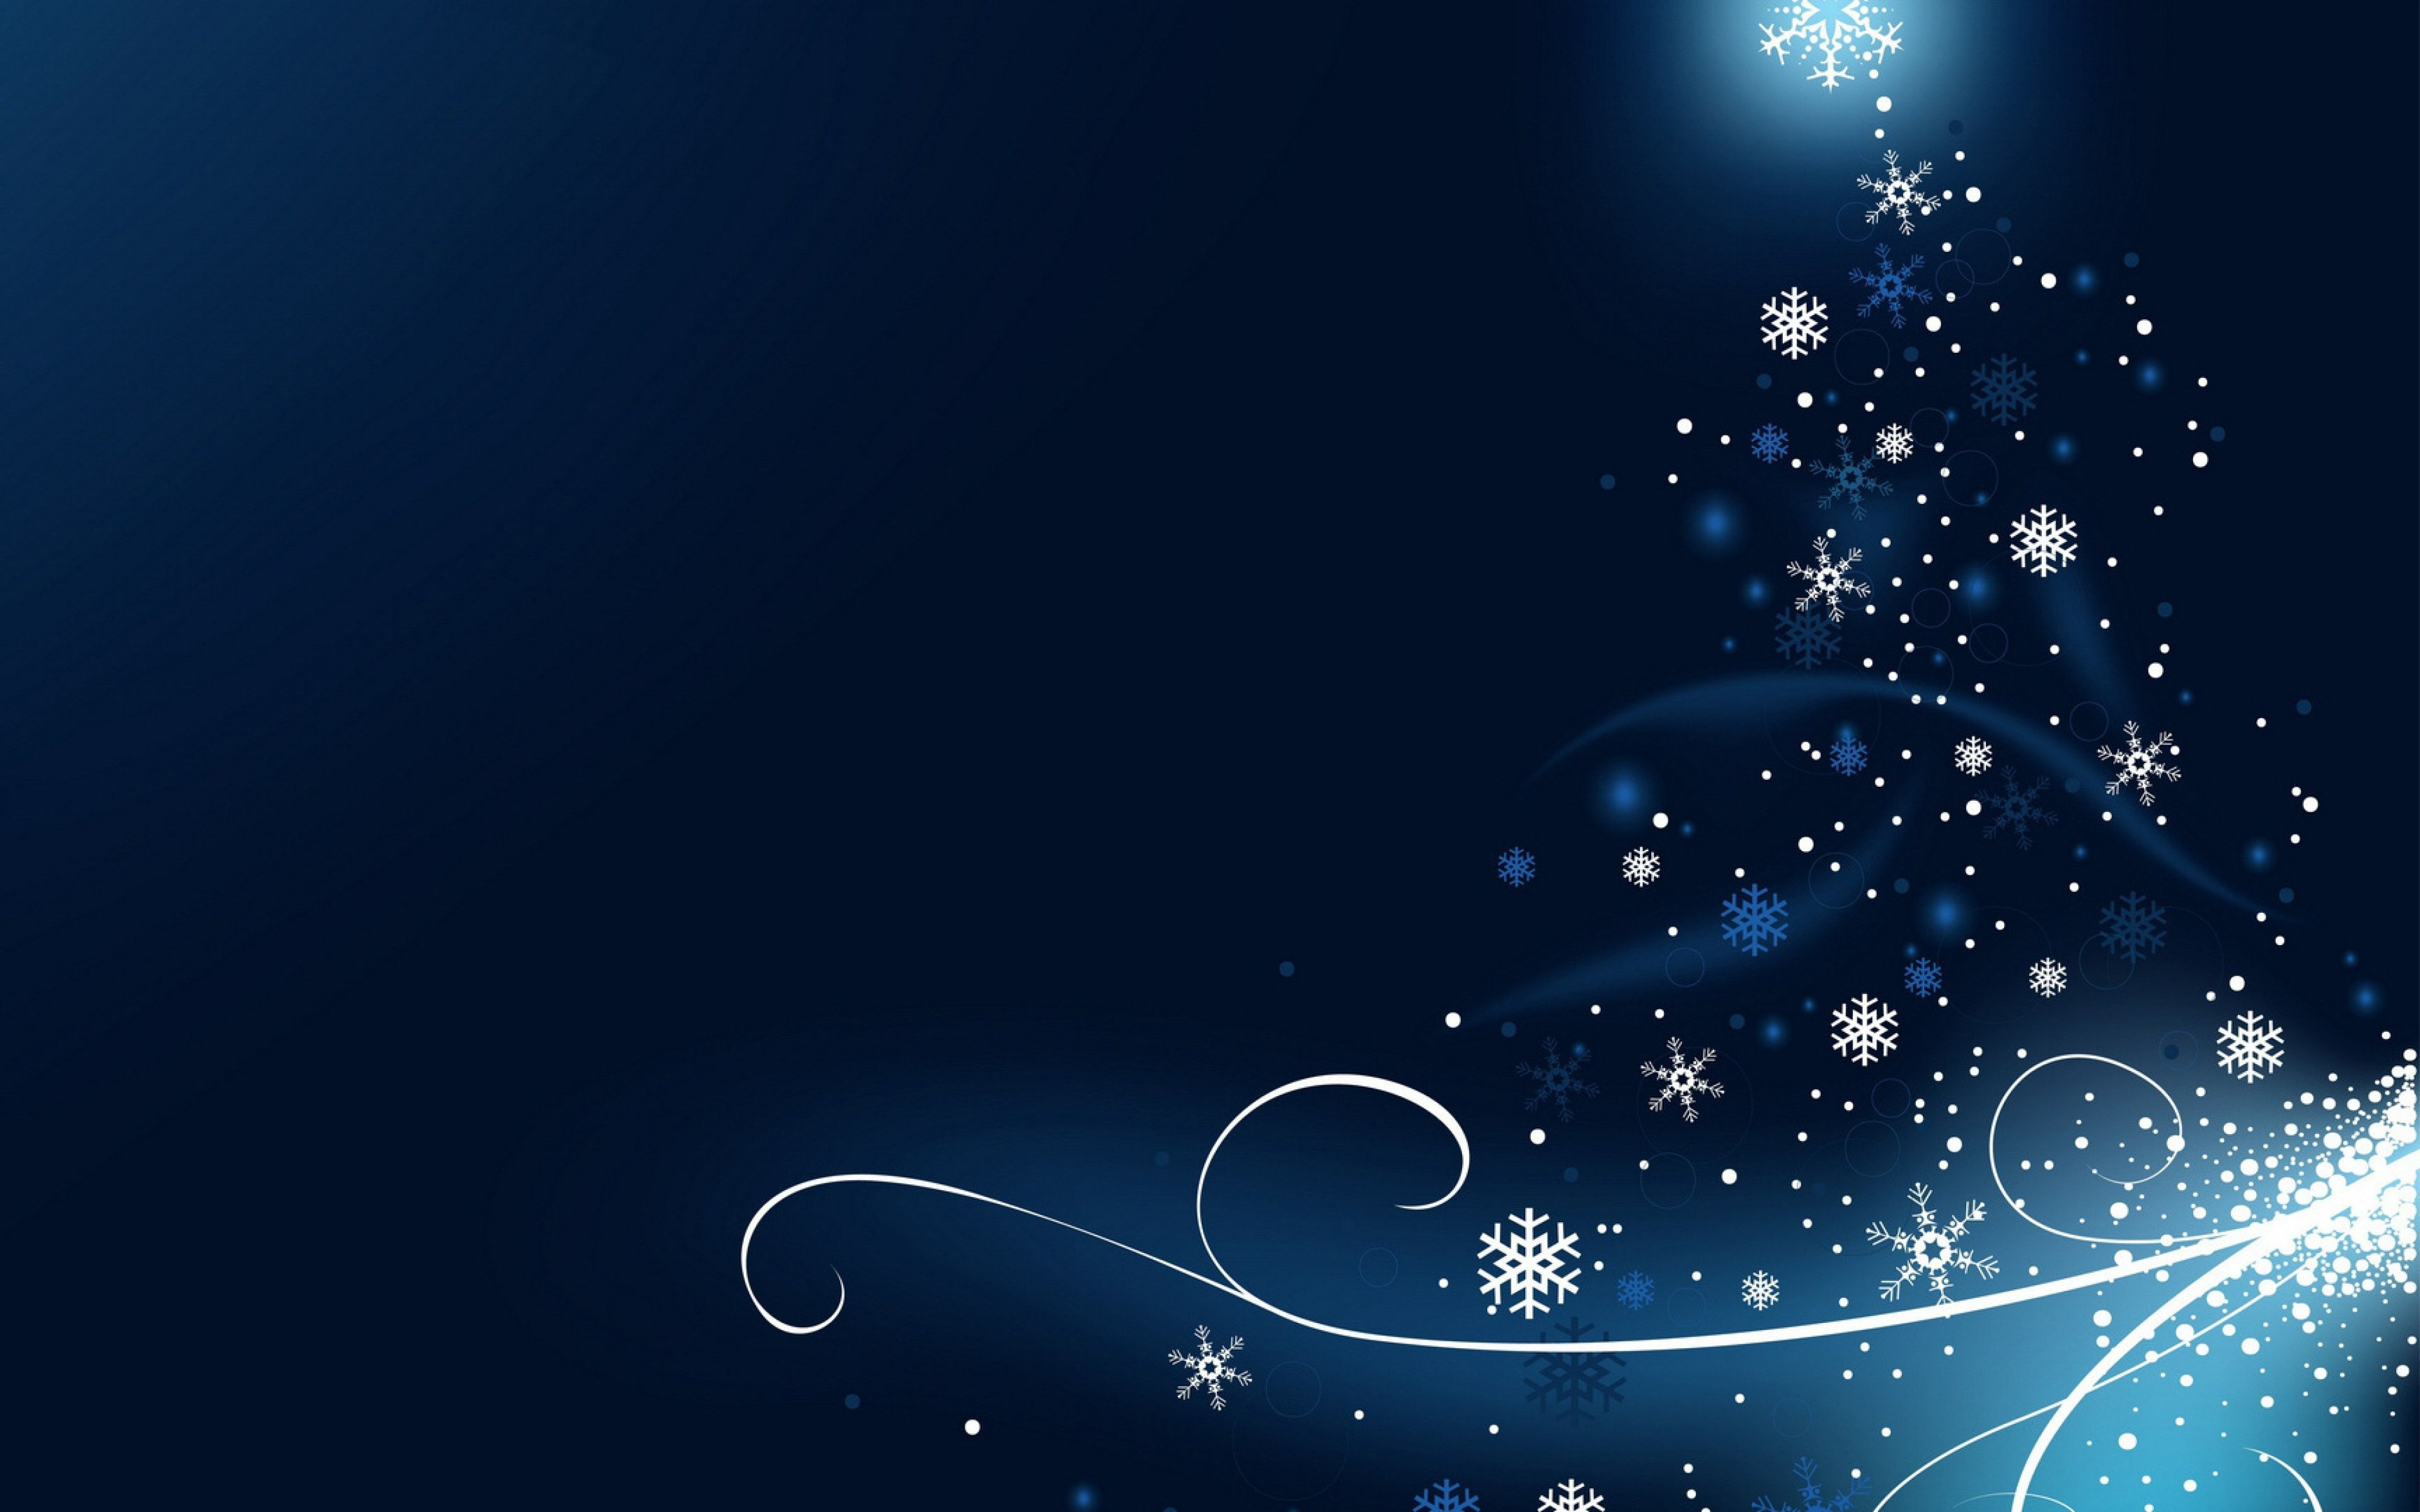 Download Holiday Hd Wallpapers Free Snowflake Wallpaper Holiday Wallpaper Christmas Wallpaper Ipad